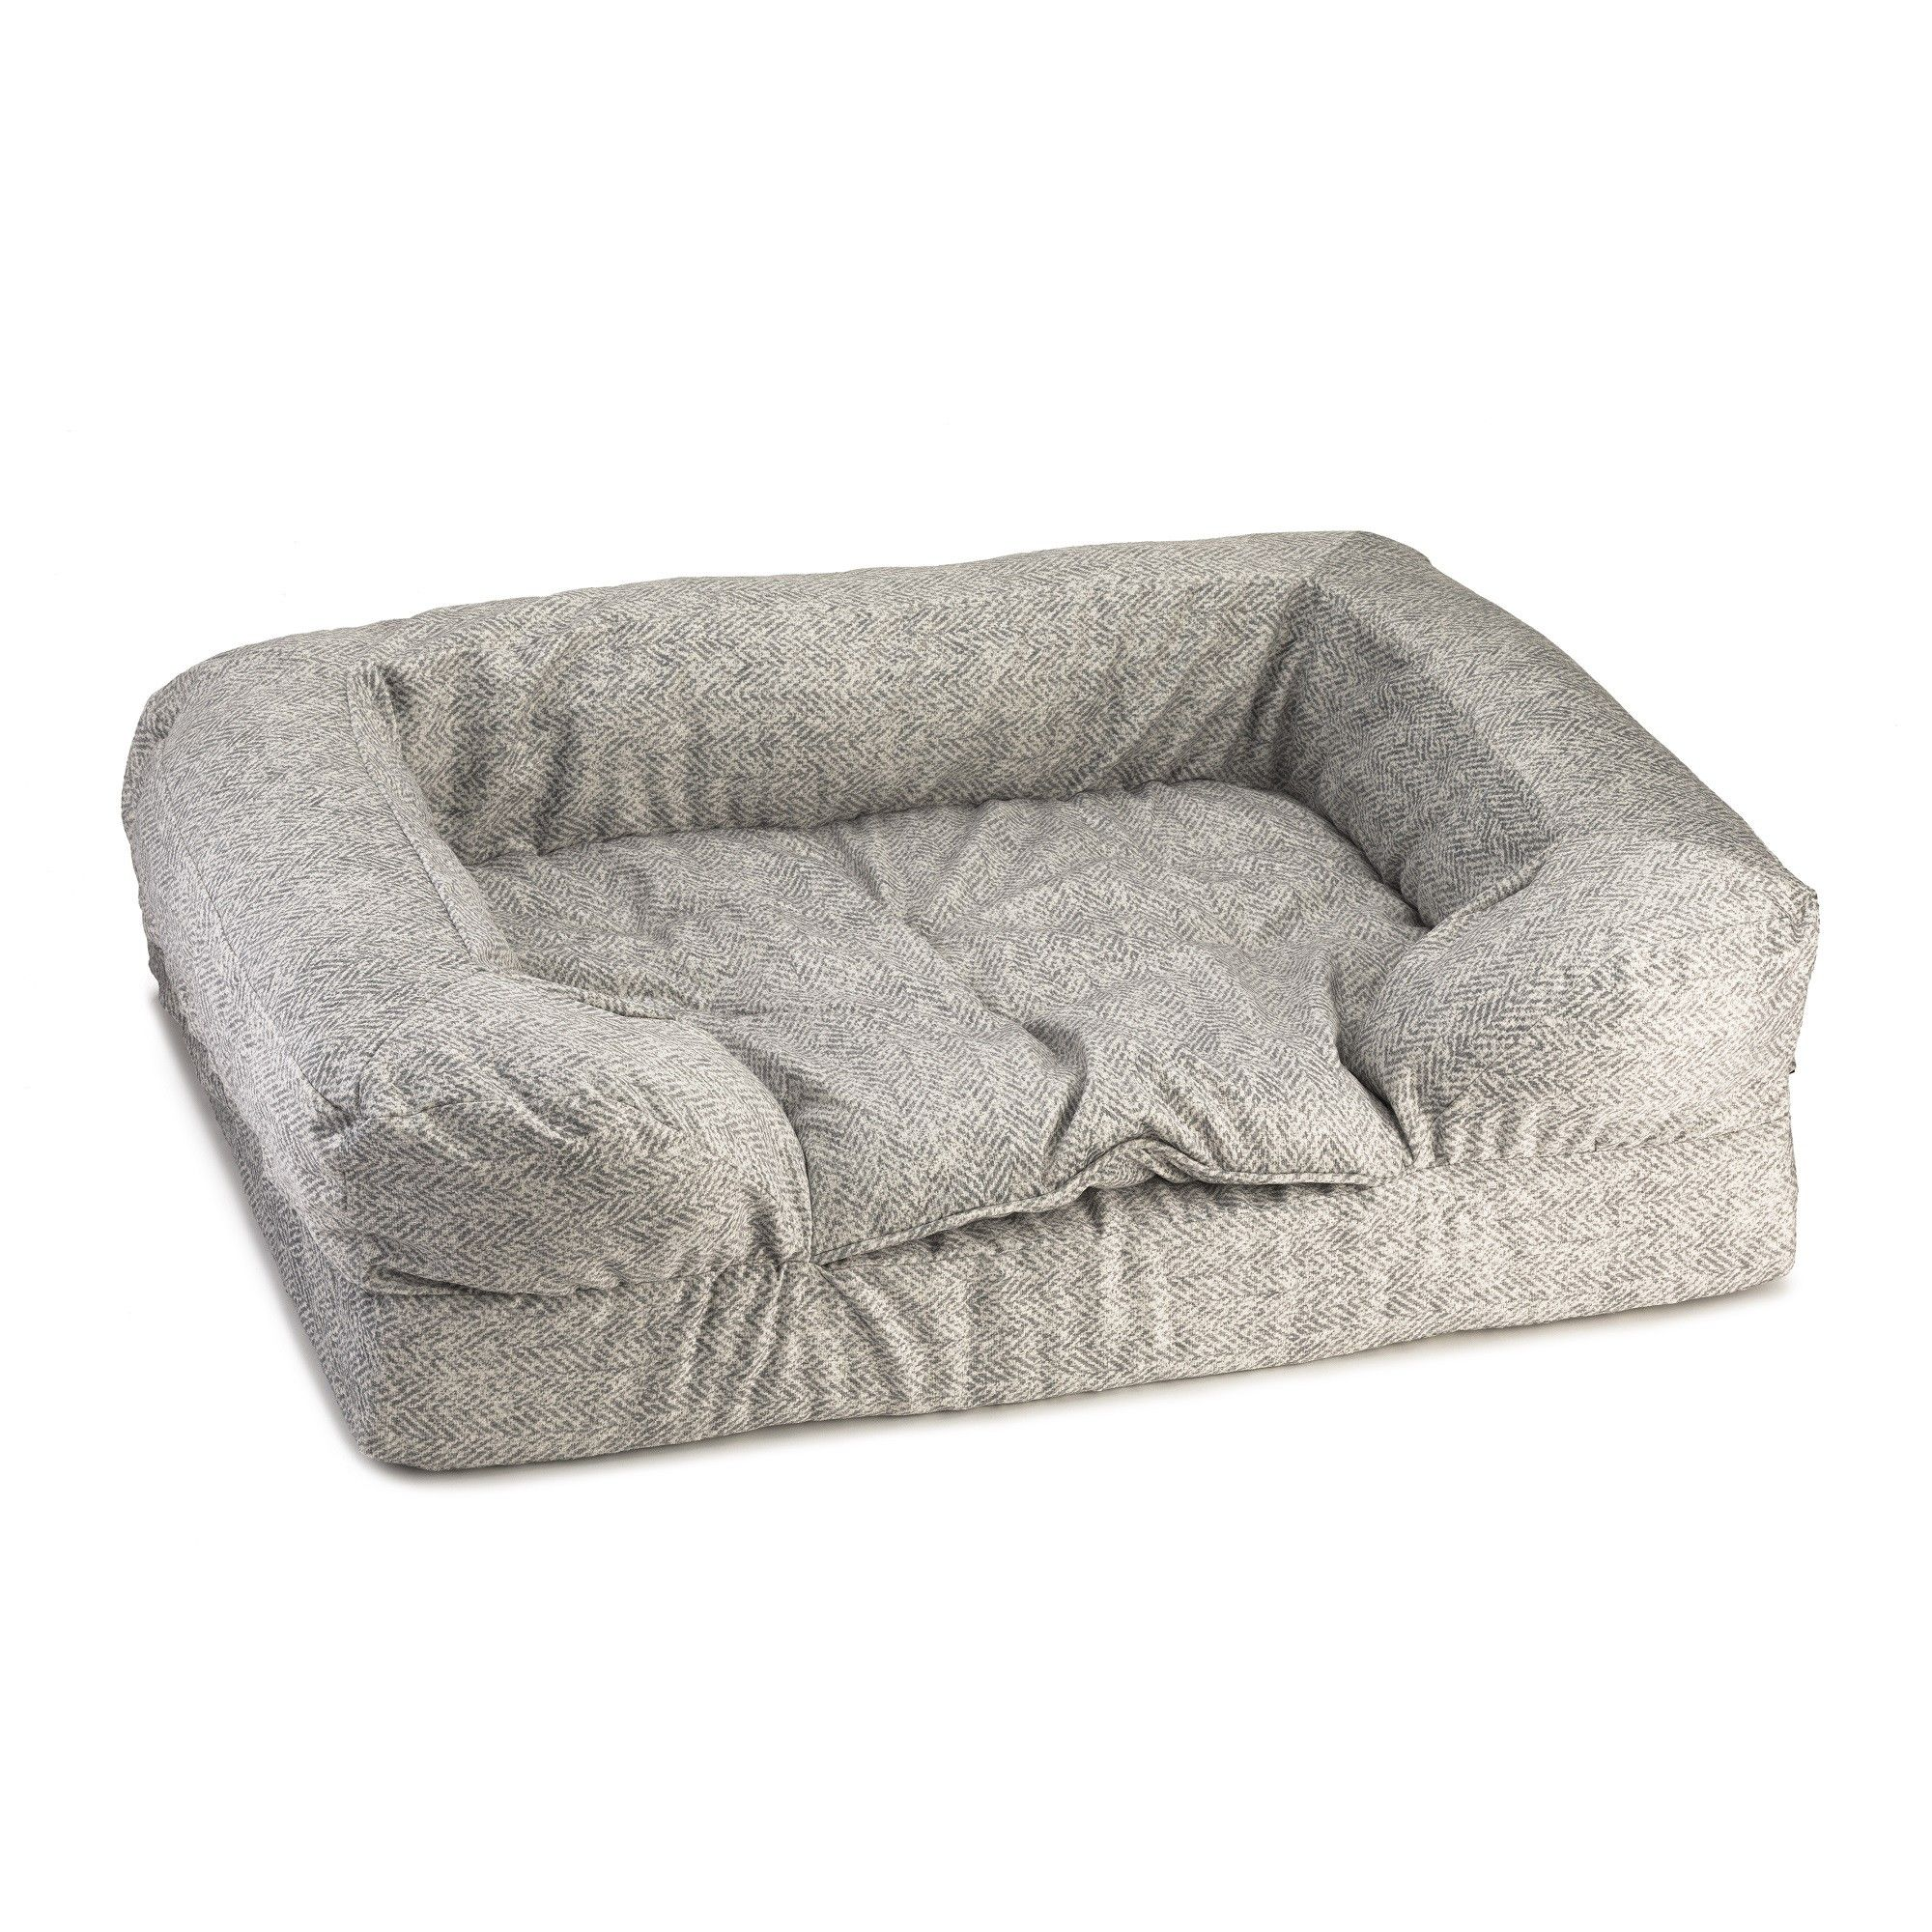 Snoozer 69977 Premium Pet Dog Sofa XLarge